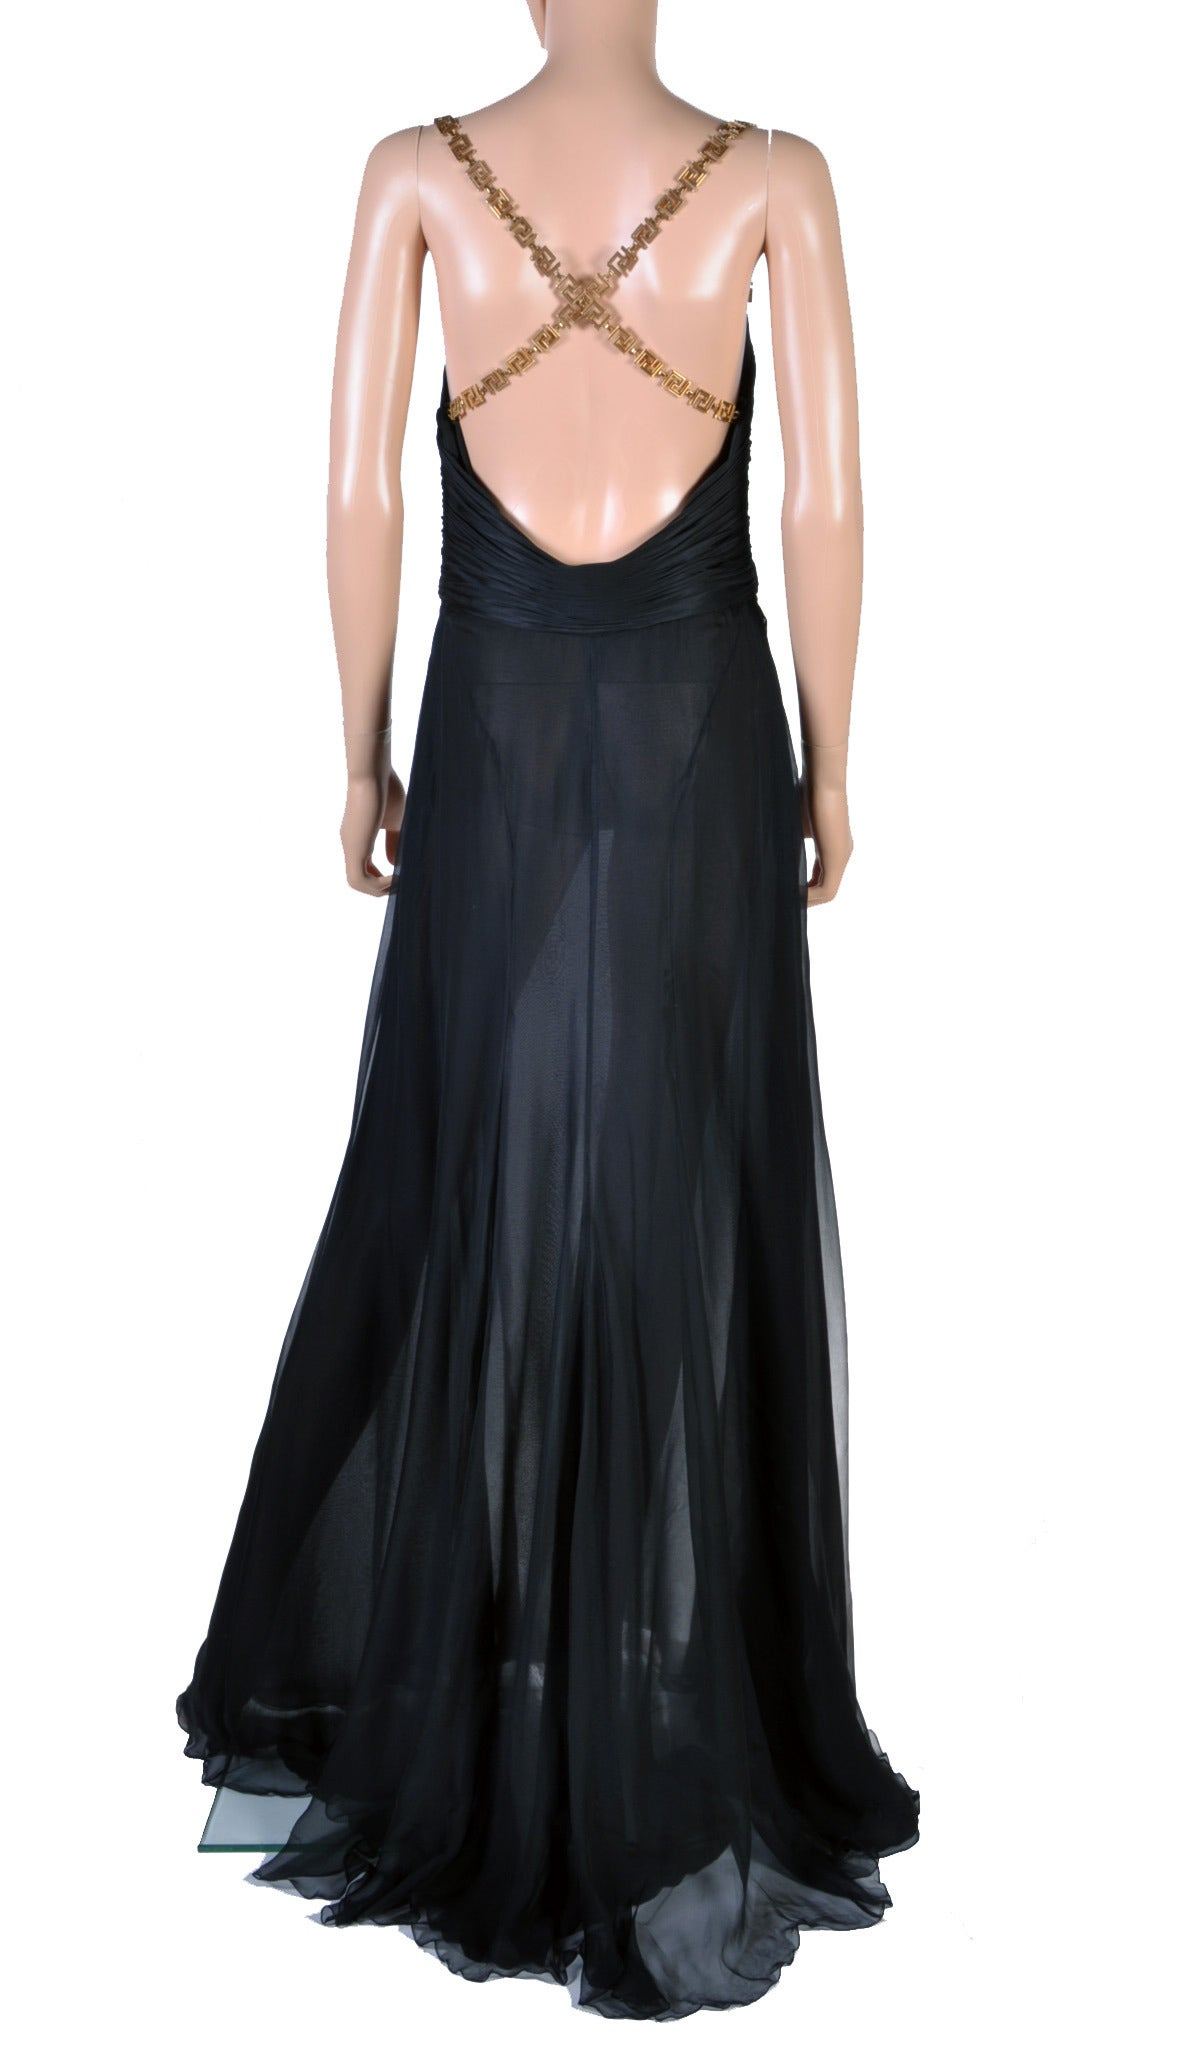 Versace Black Silk Chiffon Gown with Greek Key Straps For Sale 1